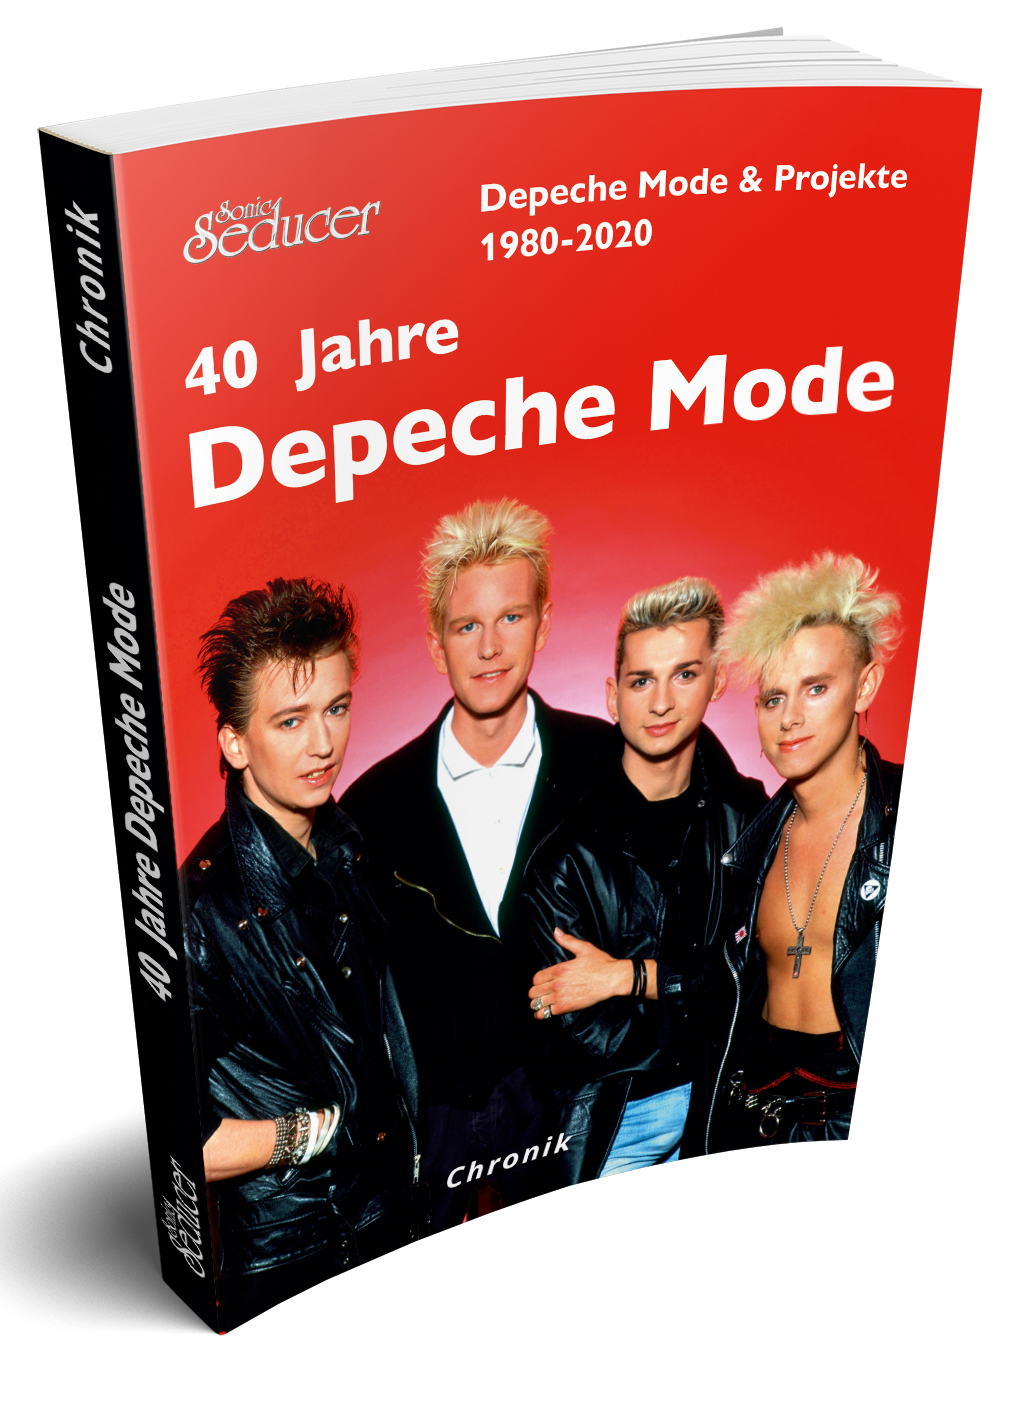 https://sonic-seducer.de/images/stories/virtuemart/product/depeche-mode-taschenbuch-mockup-neu.jpg